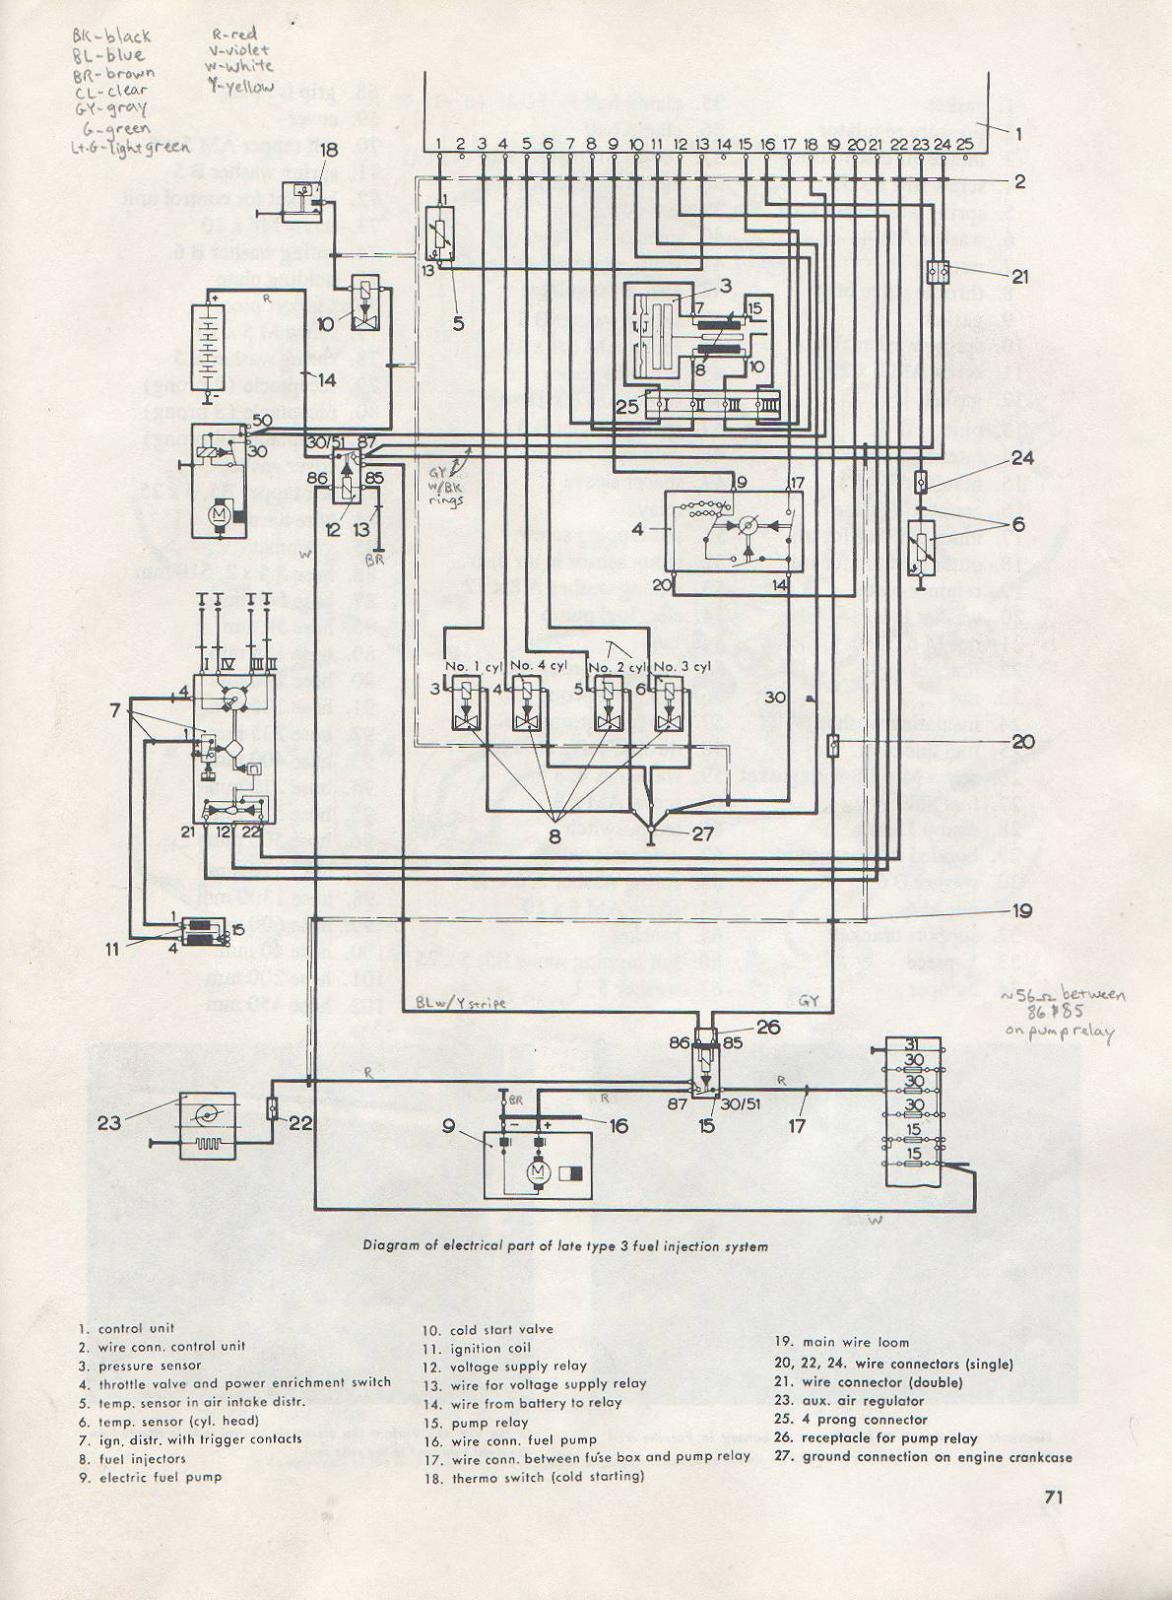 Type 3 View Topic Fuel Pump Relay Help Electric Wiring Schematic Image May Have Been Reduced In Size Click To Fullscreen